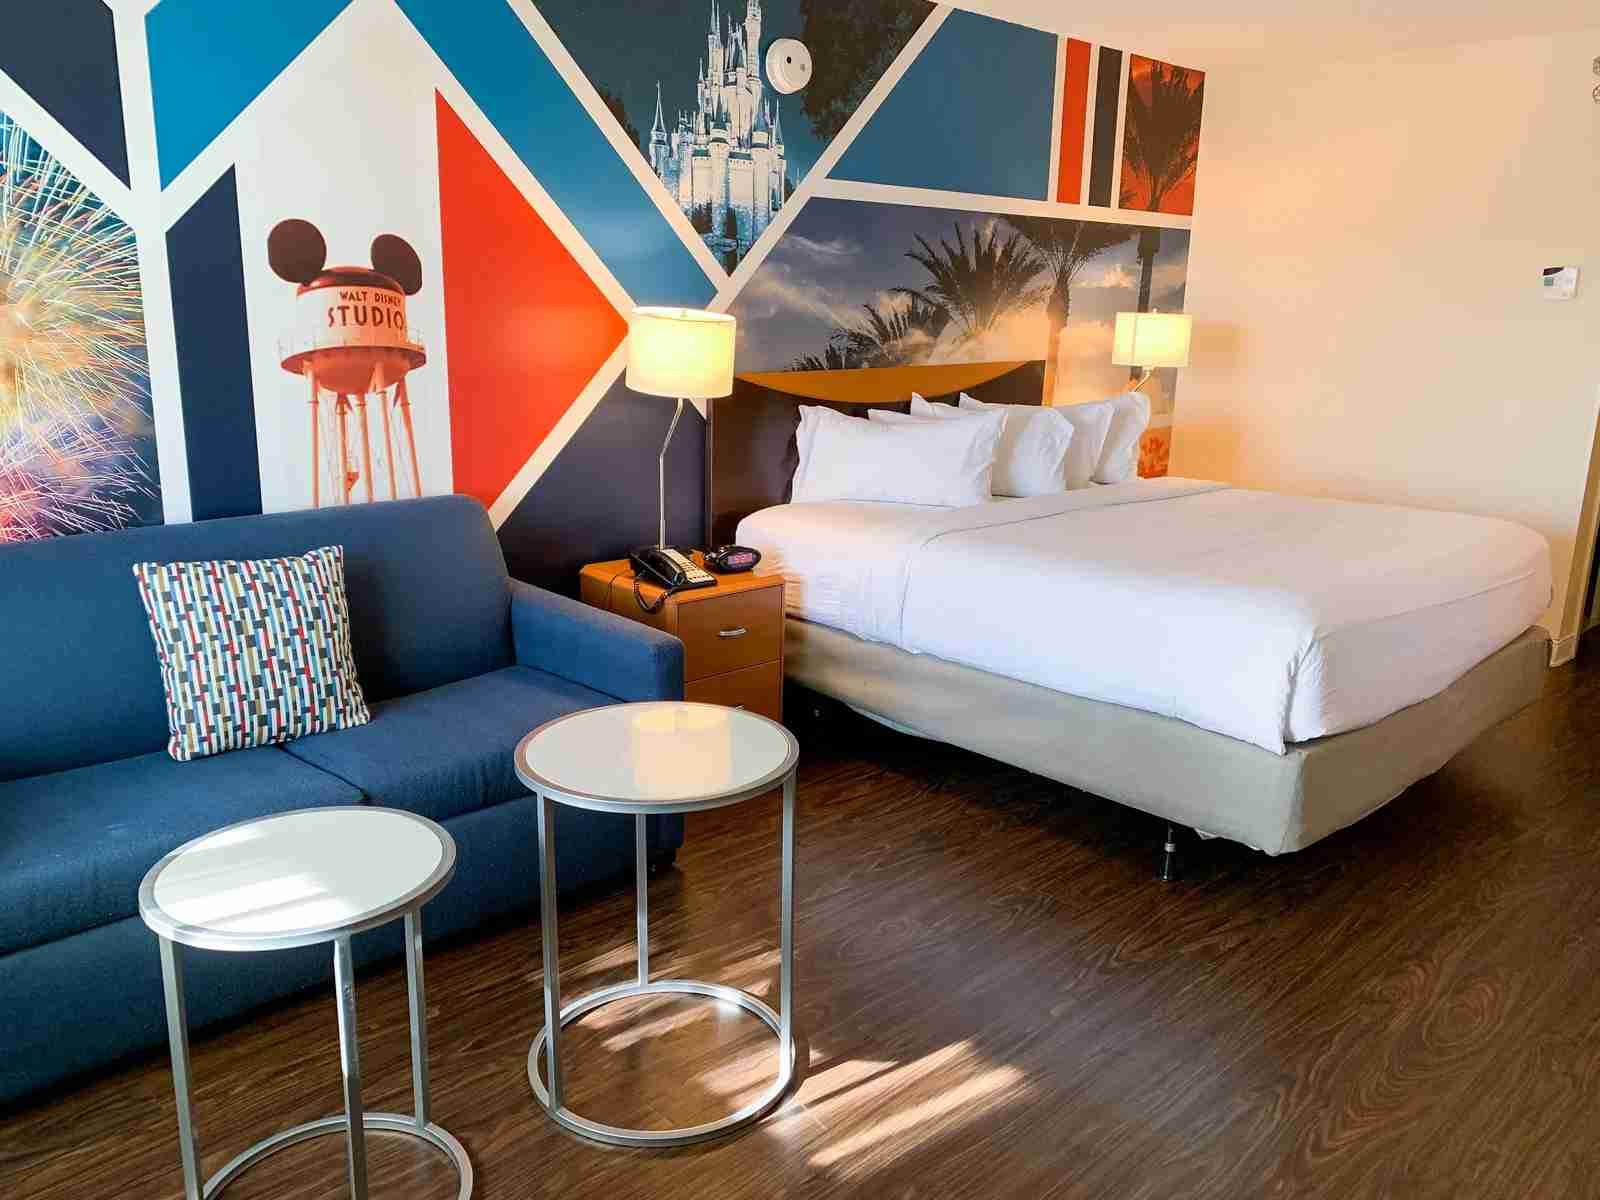 Fairfield Anaheim Disneyland Room